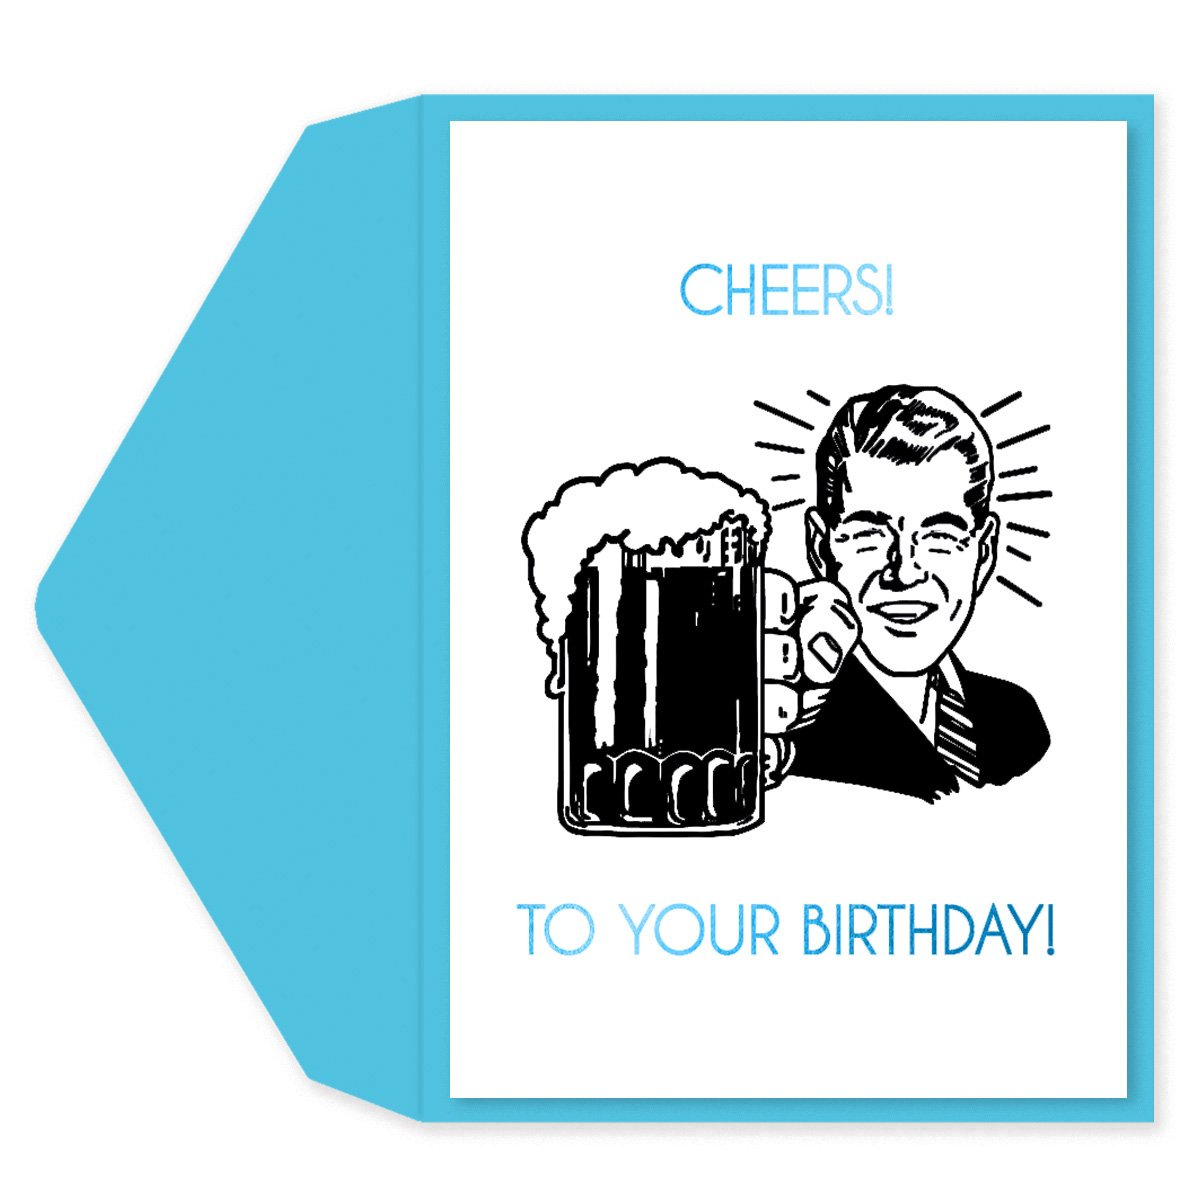 Retro Cheers Birthday Card